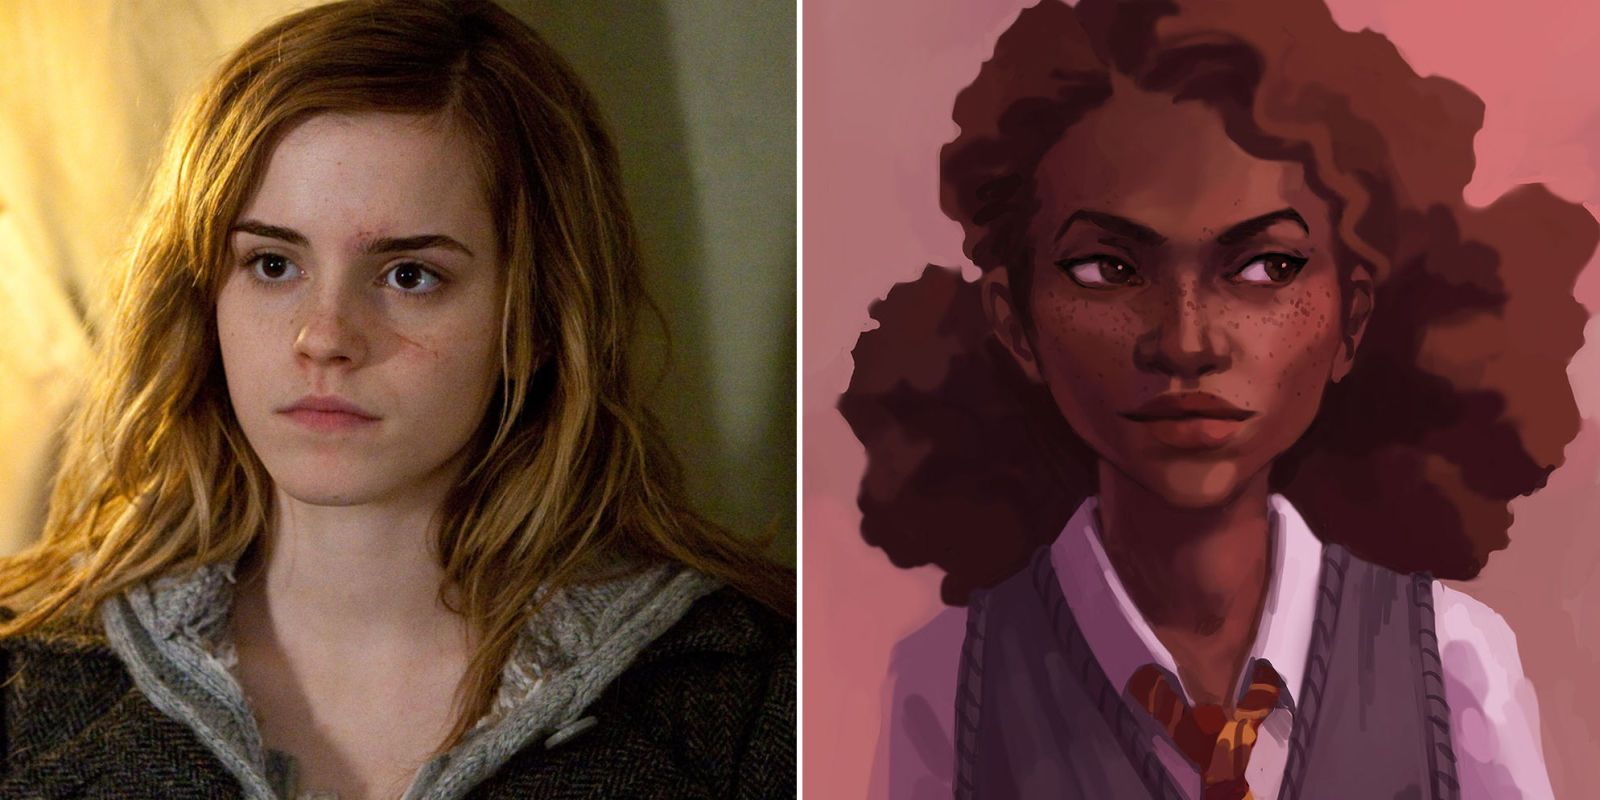 Why Did Everyone Assume Hermione Granger Was White In The First Place Hermione Granger Fanart Hermione Granger Black Hermione